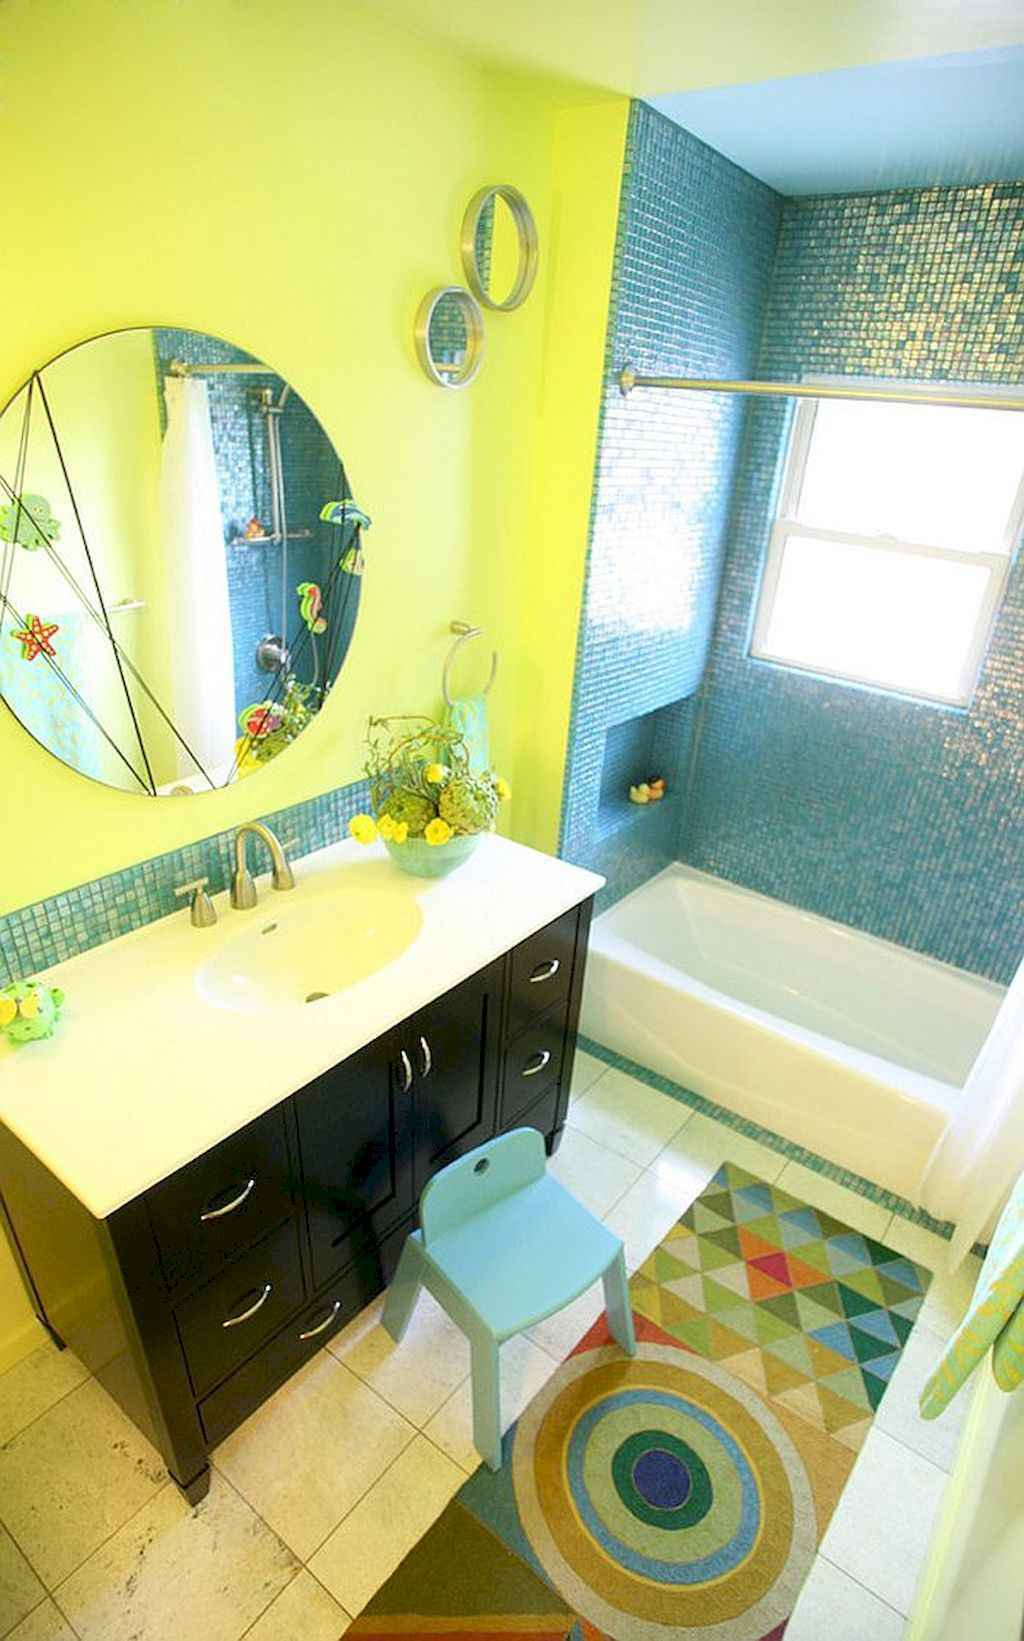 55 cool and relax bathroom design ideas (48)